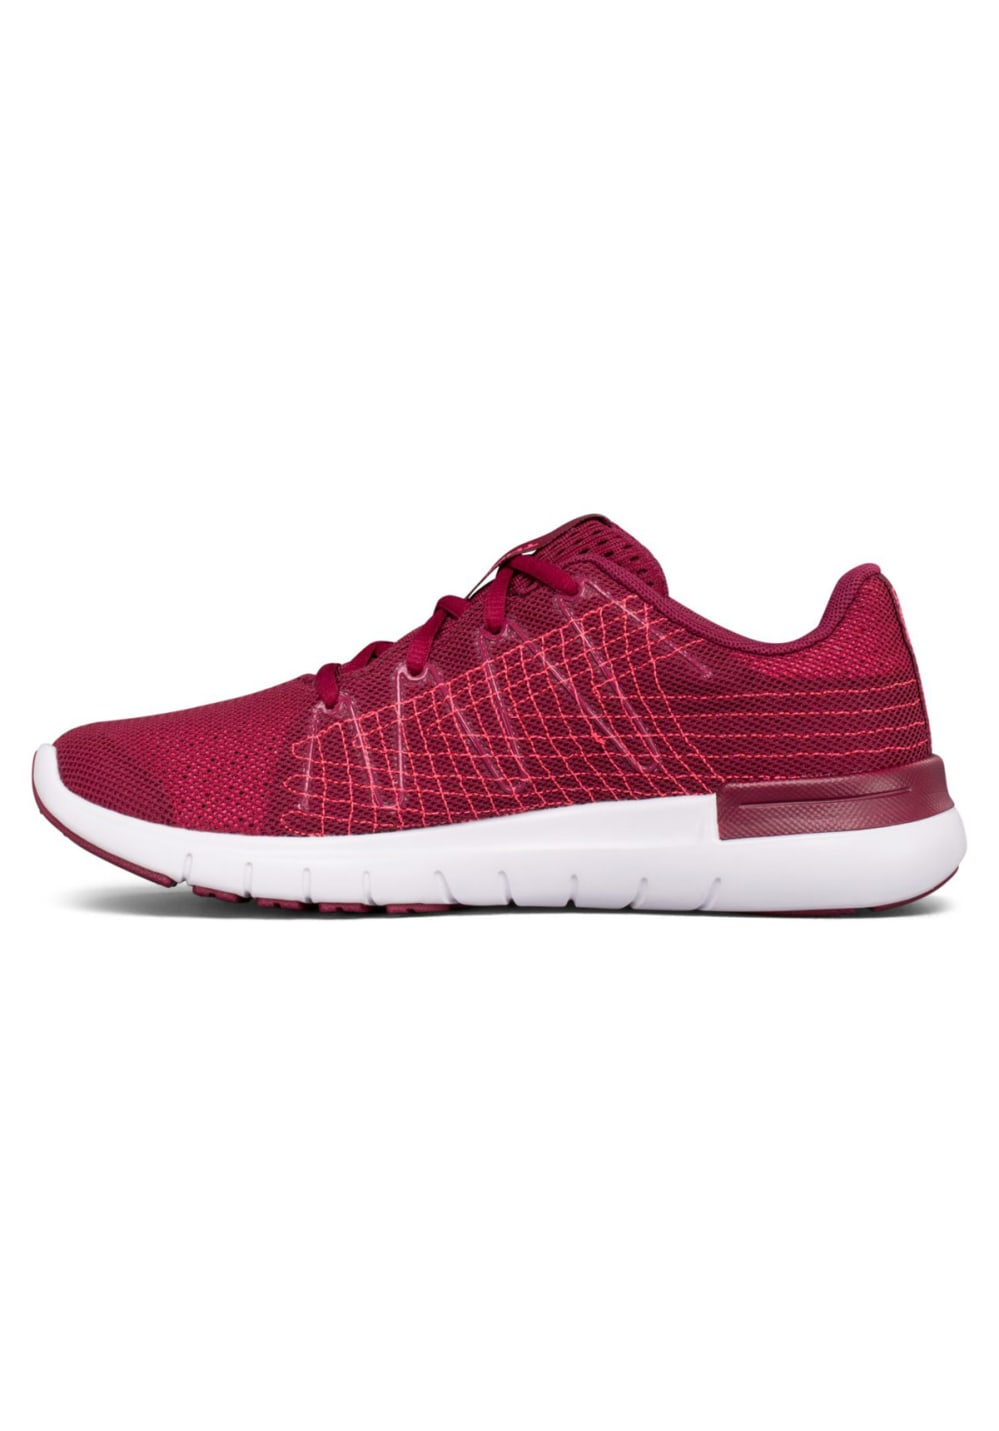 low priced 06738 d4874 Under Armour Thrill 3 - Running shoes for Women - Red